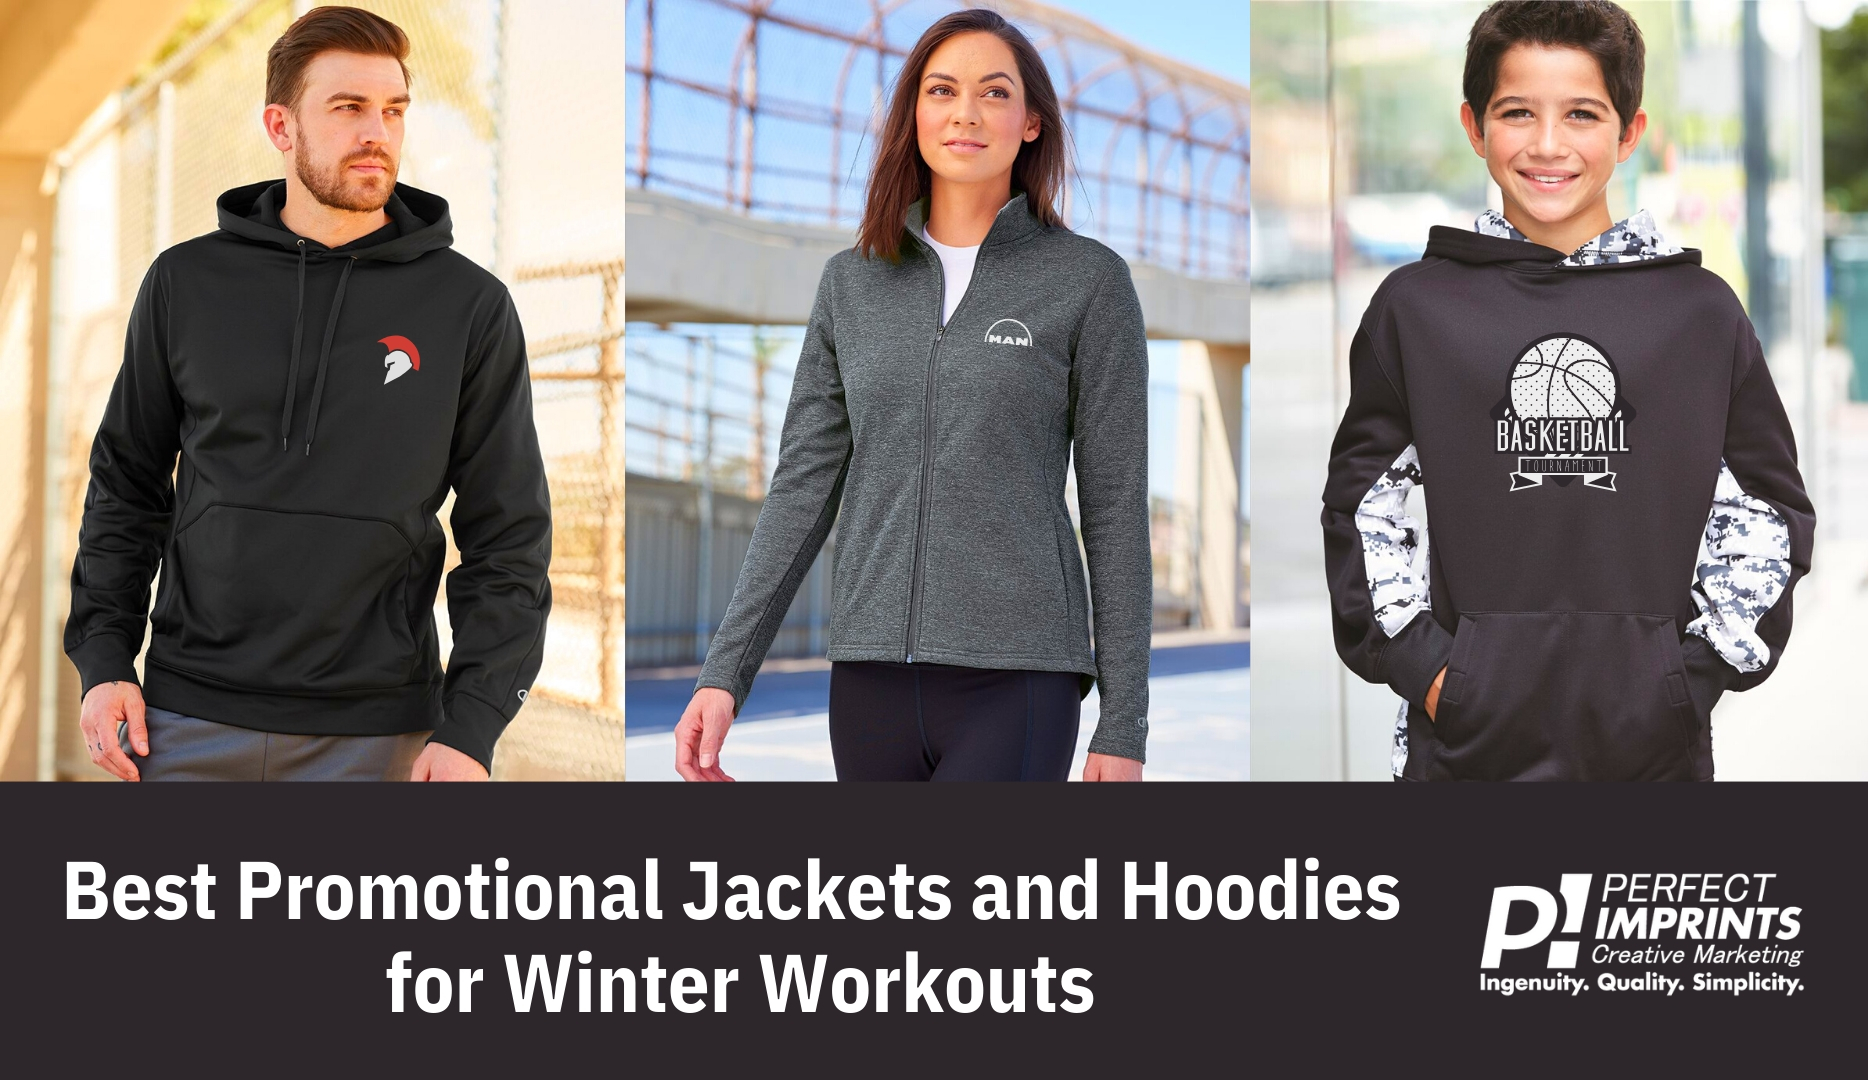 Best Promotional Jackets and Hoodies for Winter Workouts